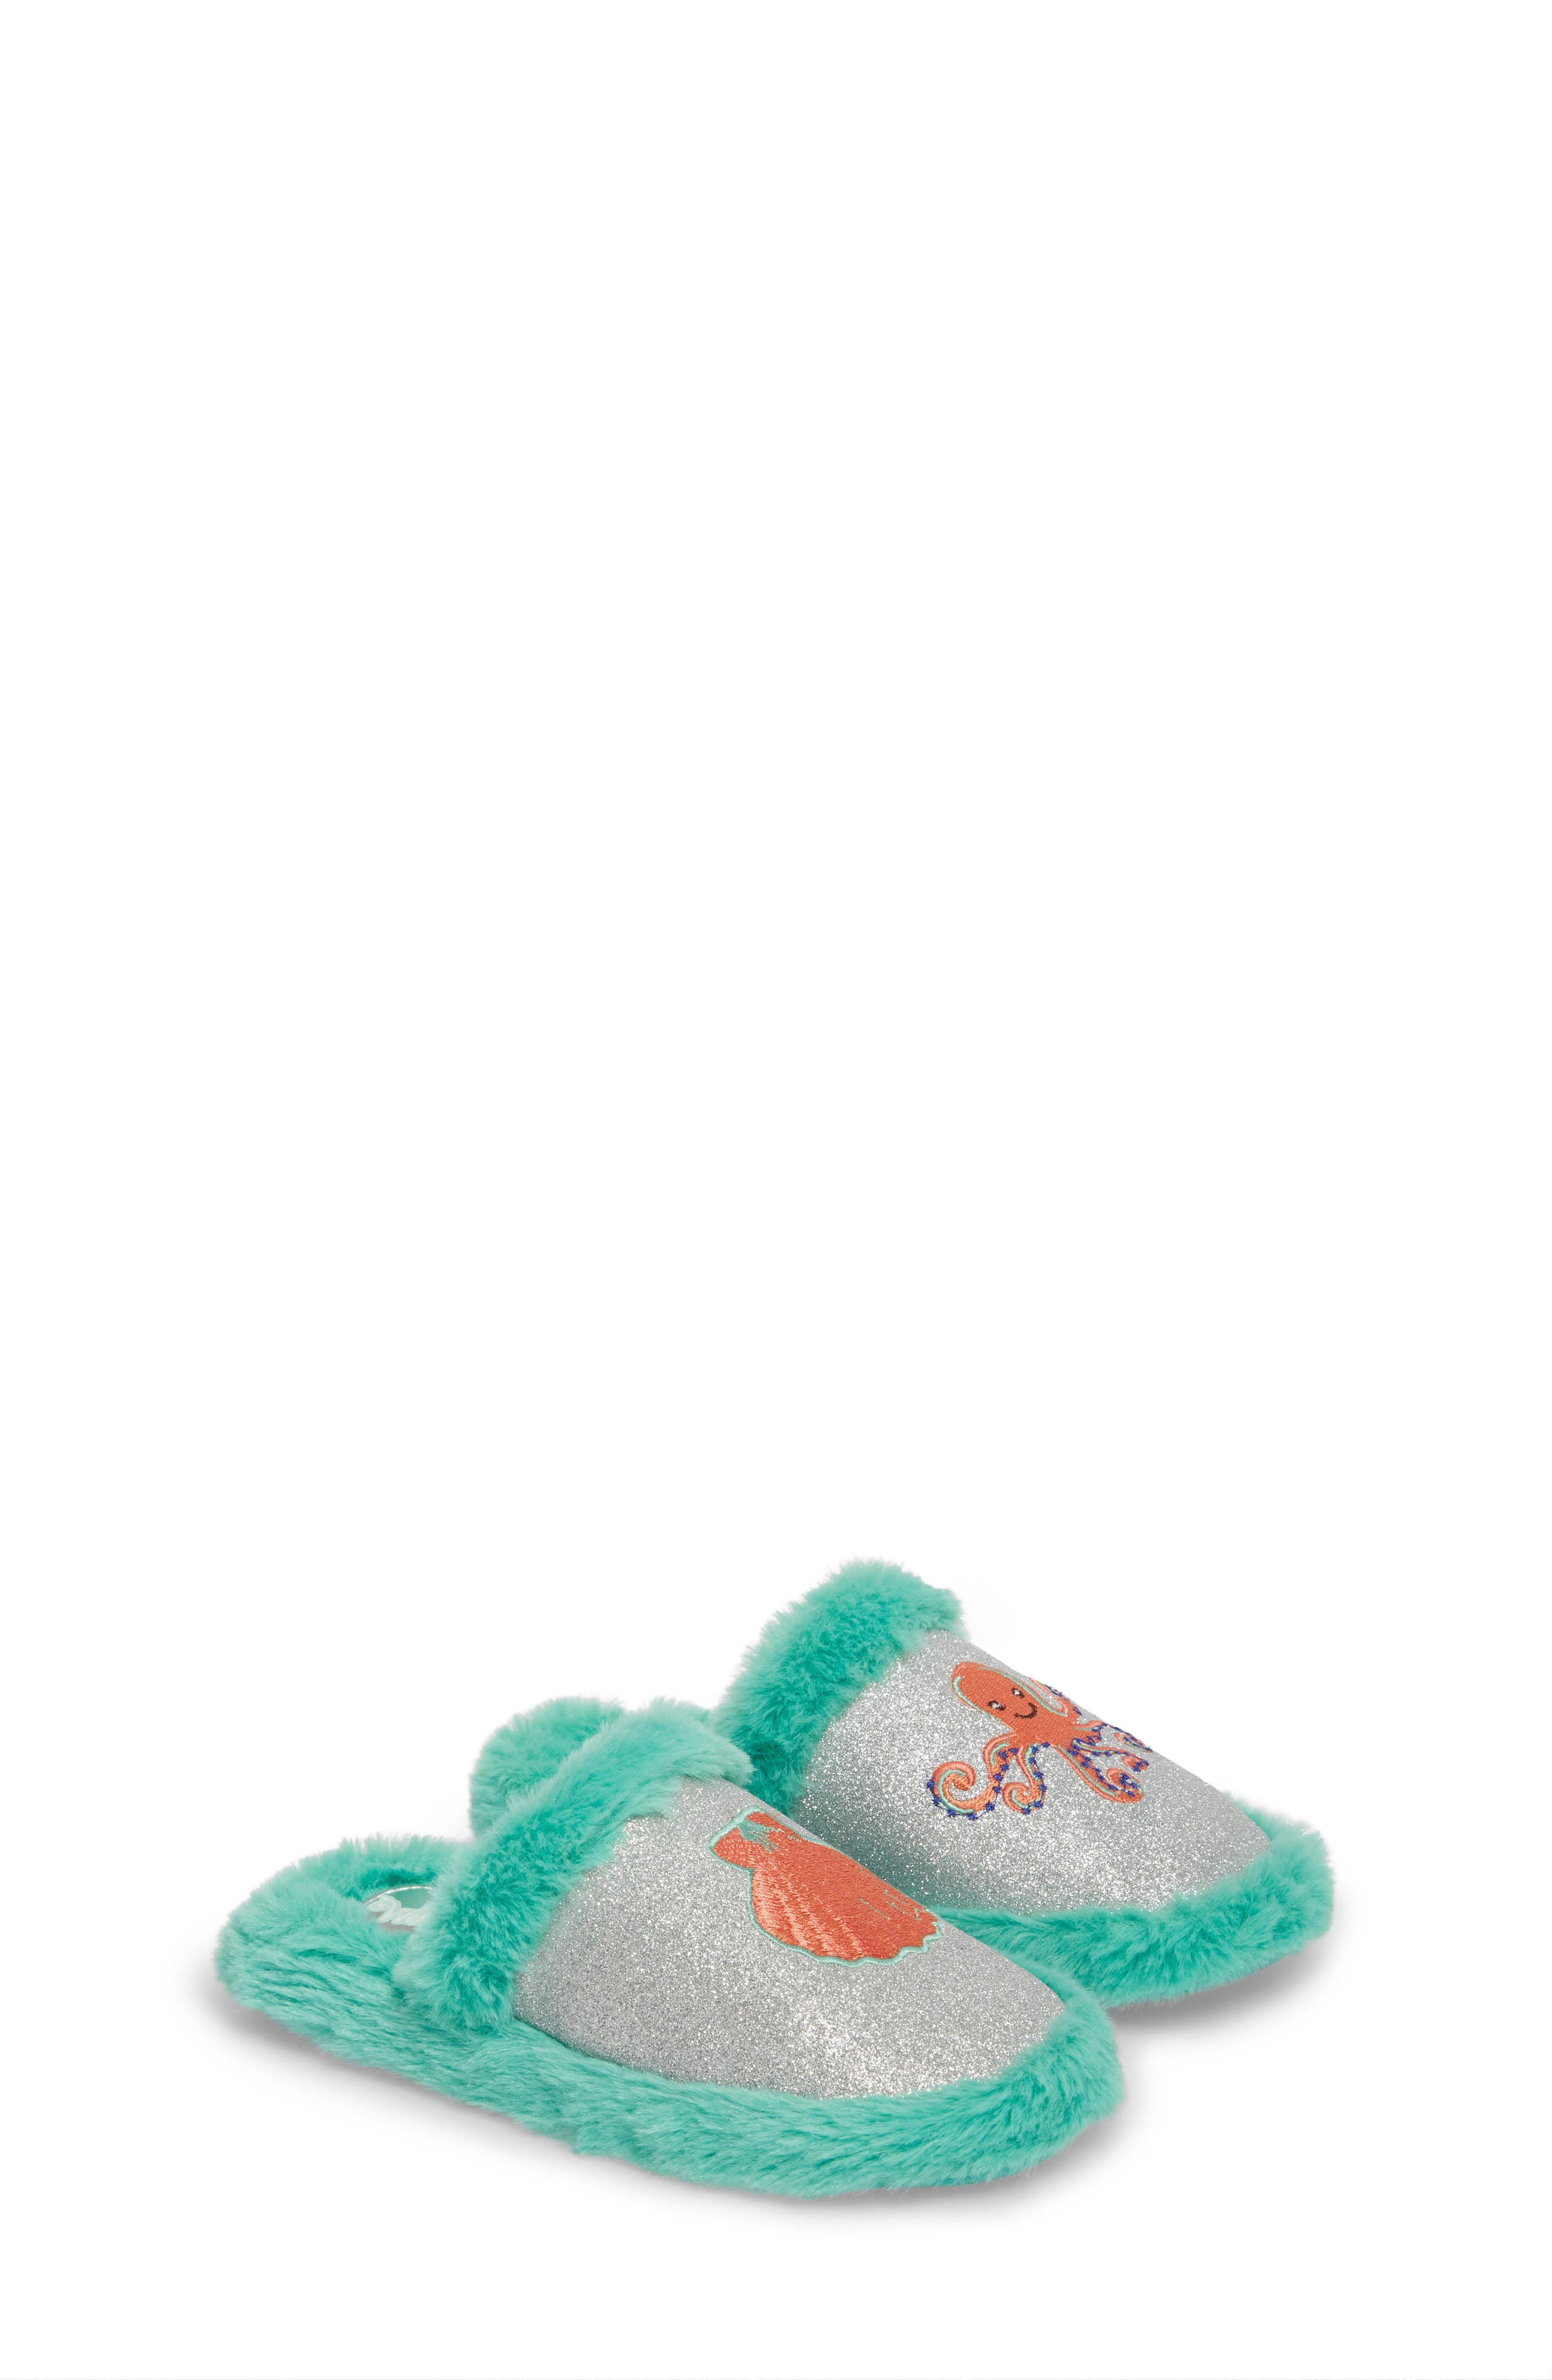 Alternate Image 1 Selected - WellieWishers from American Girl Camille Faux Fur Glitter Slipper (Toddler, Little Kid & Big Kid)